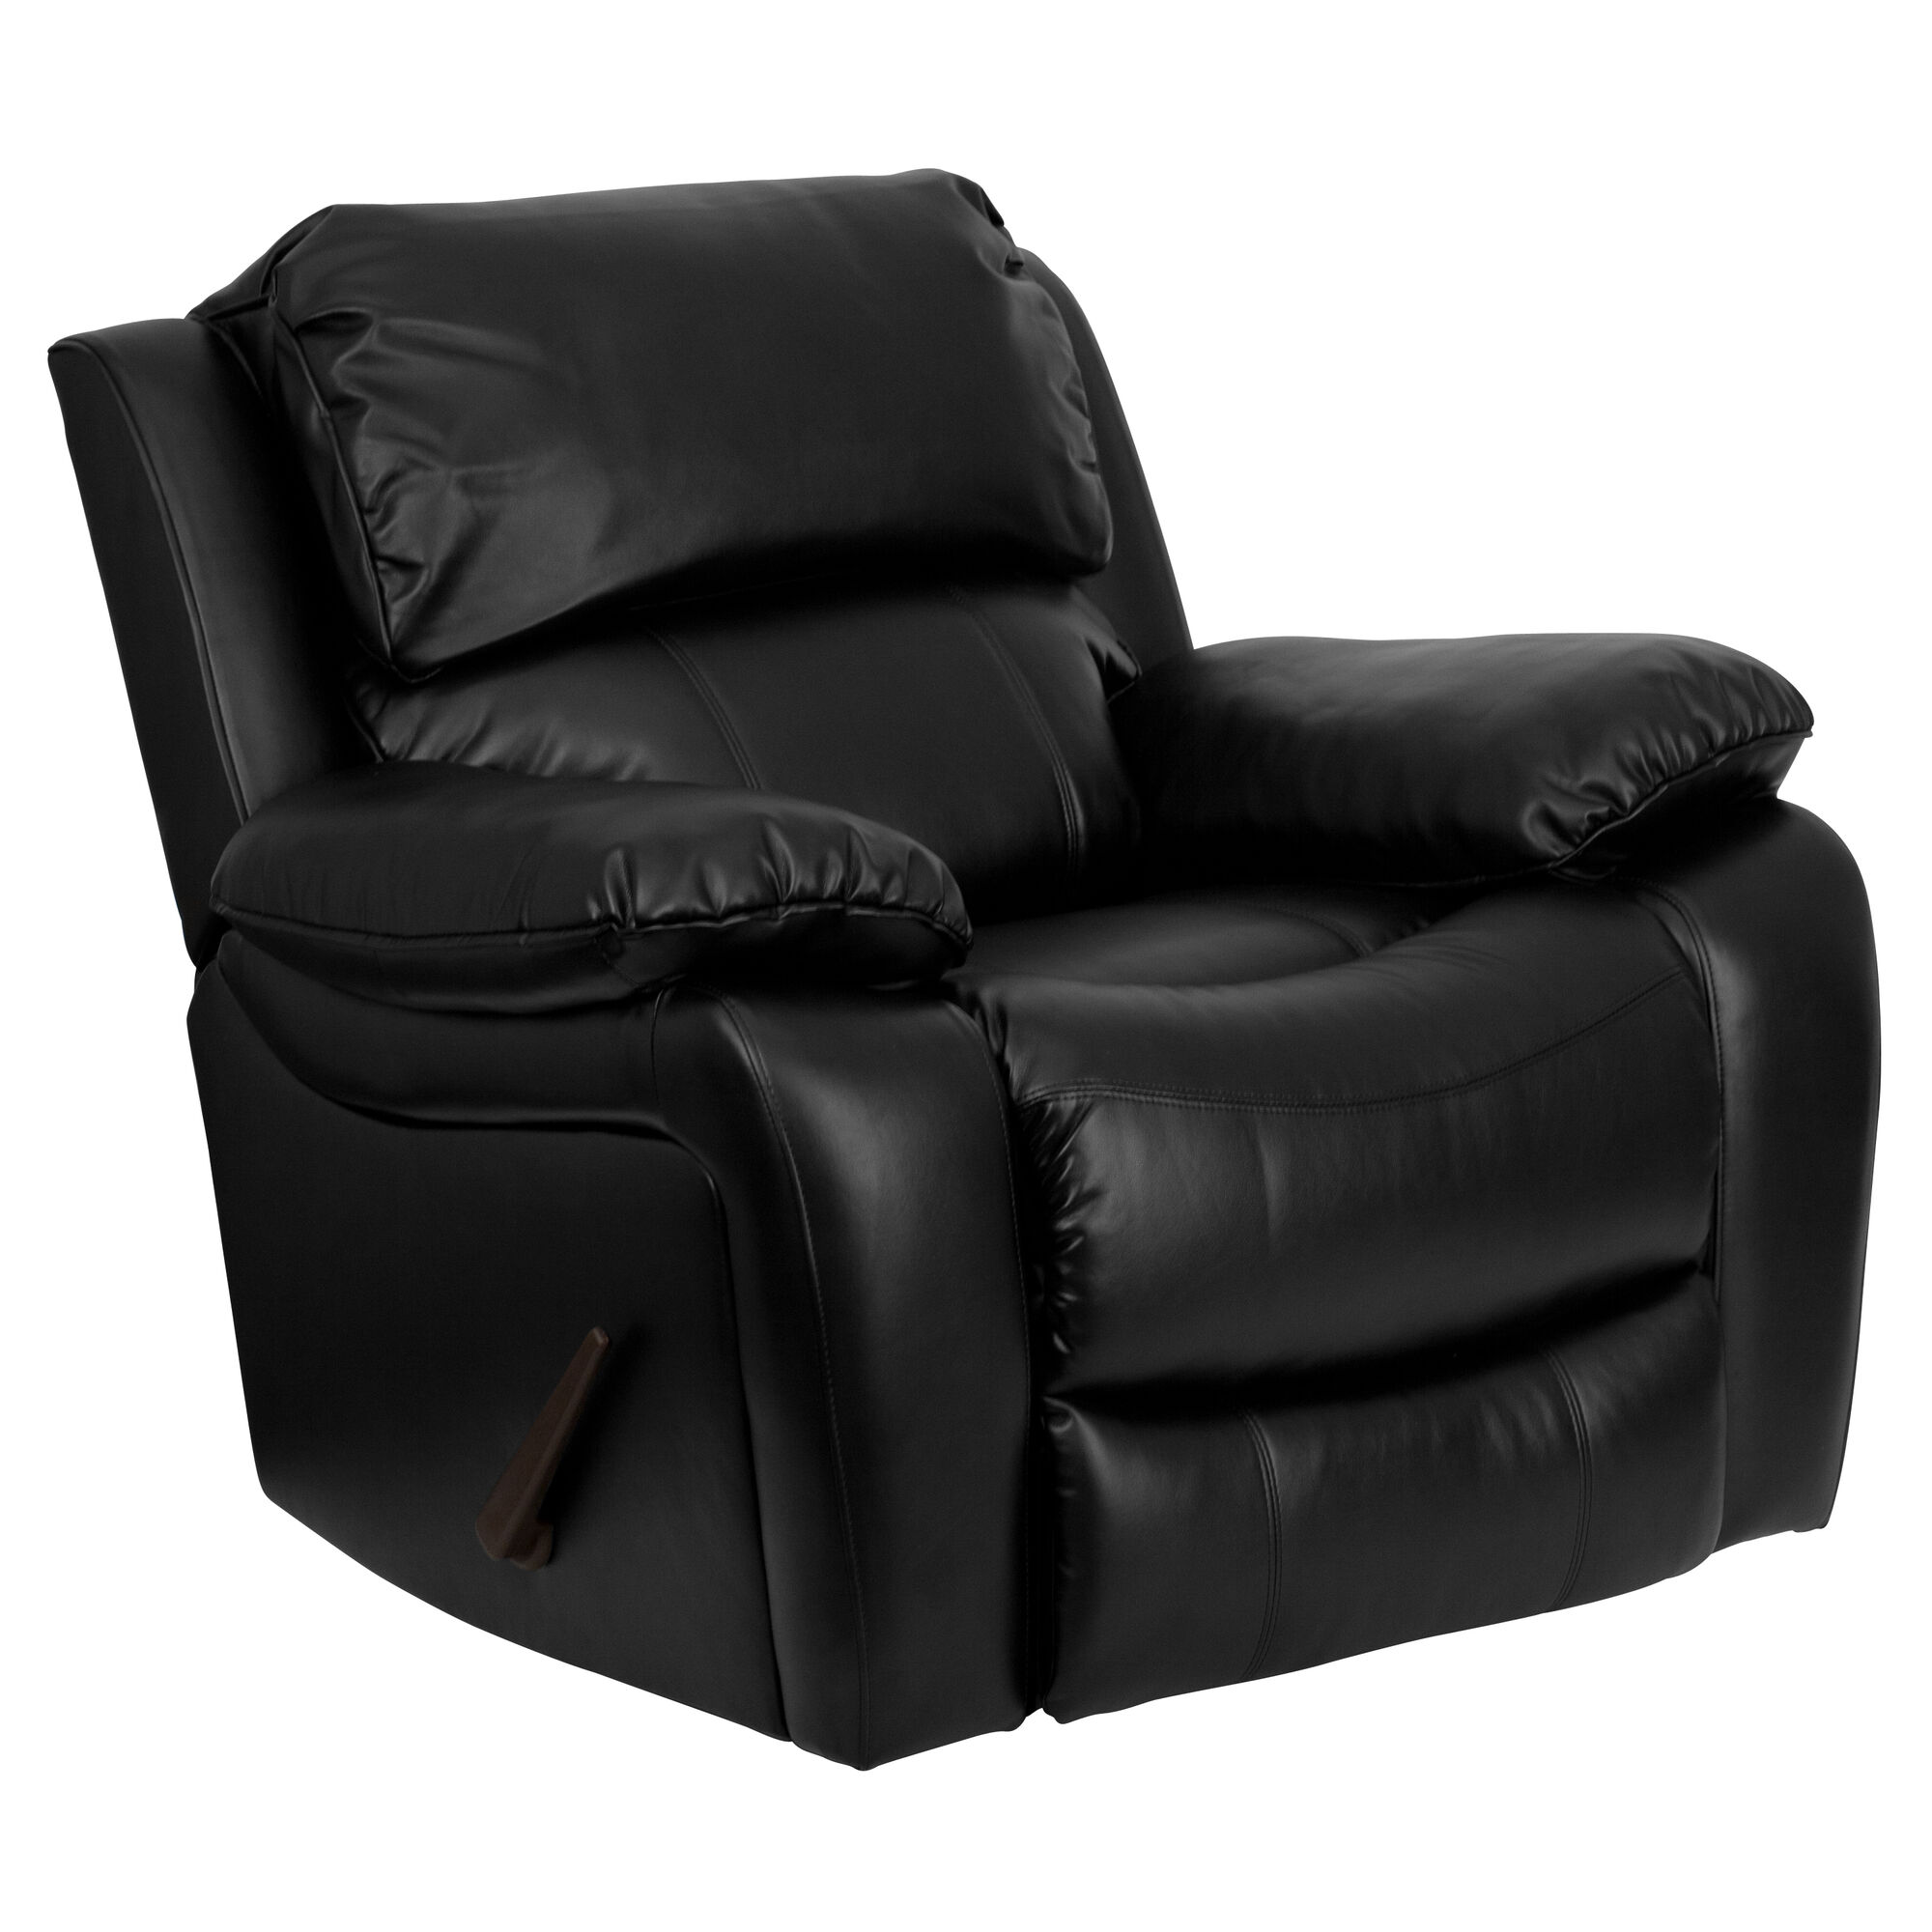 Our Black Leather Rocker Recliner Is On Sale Now